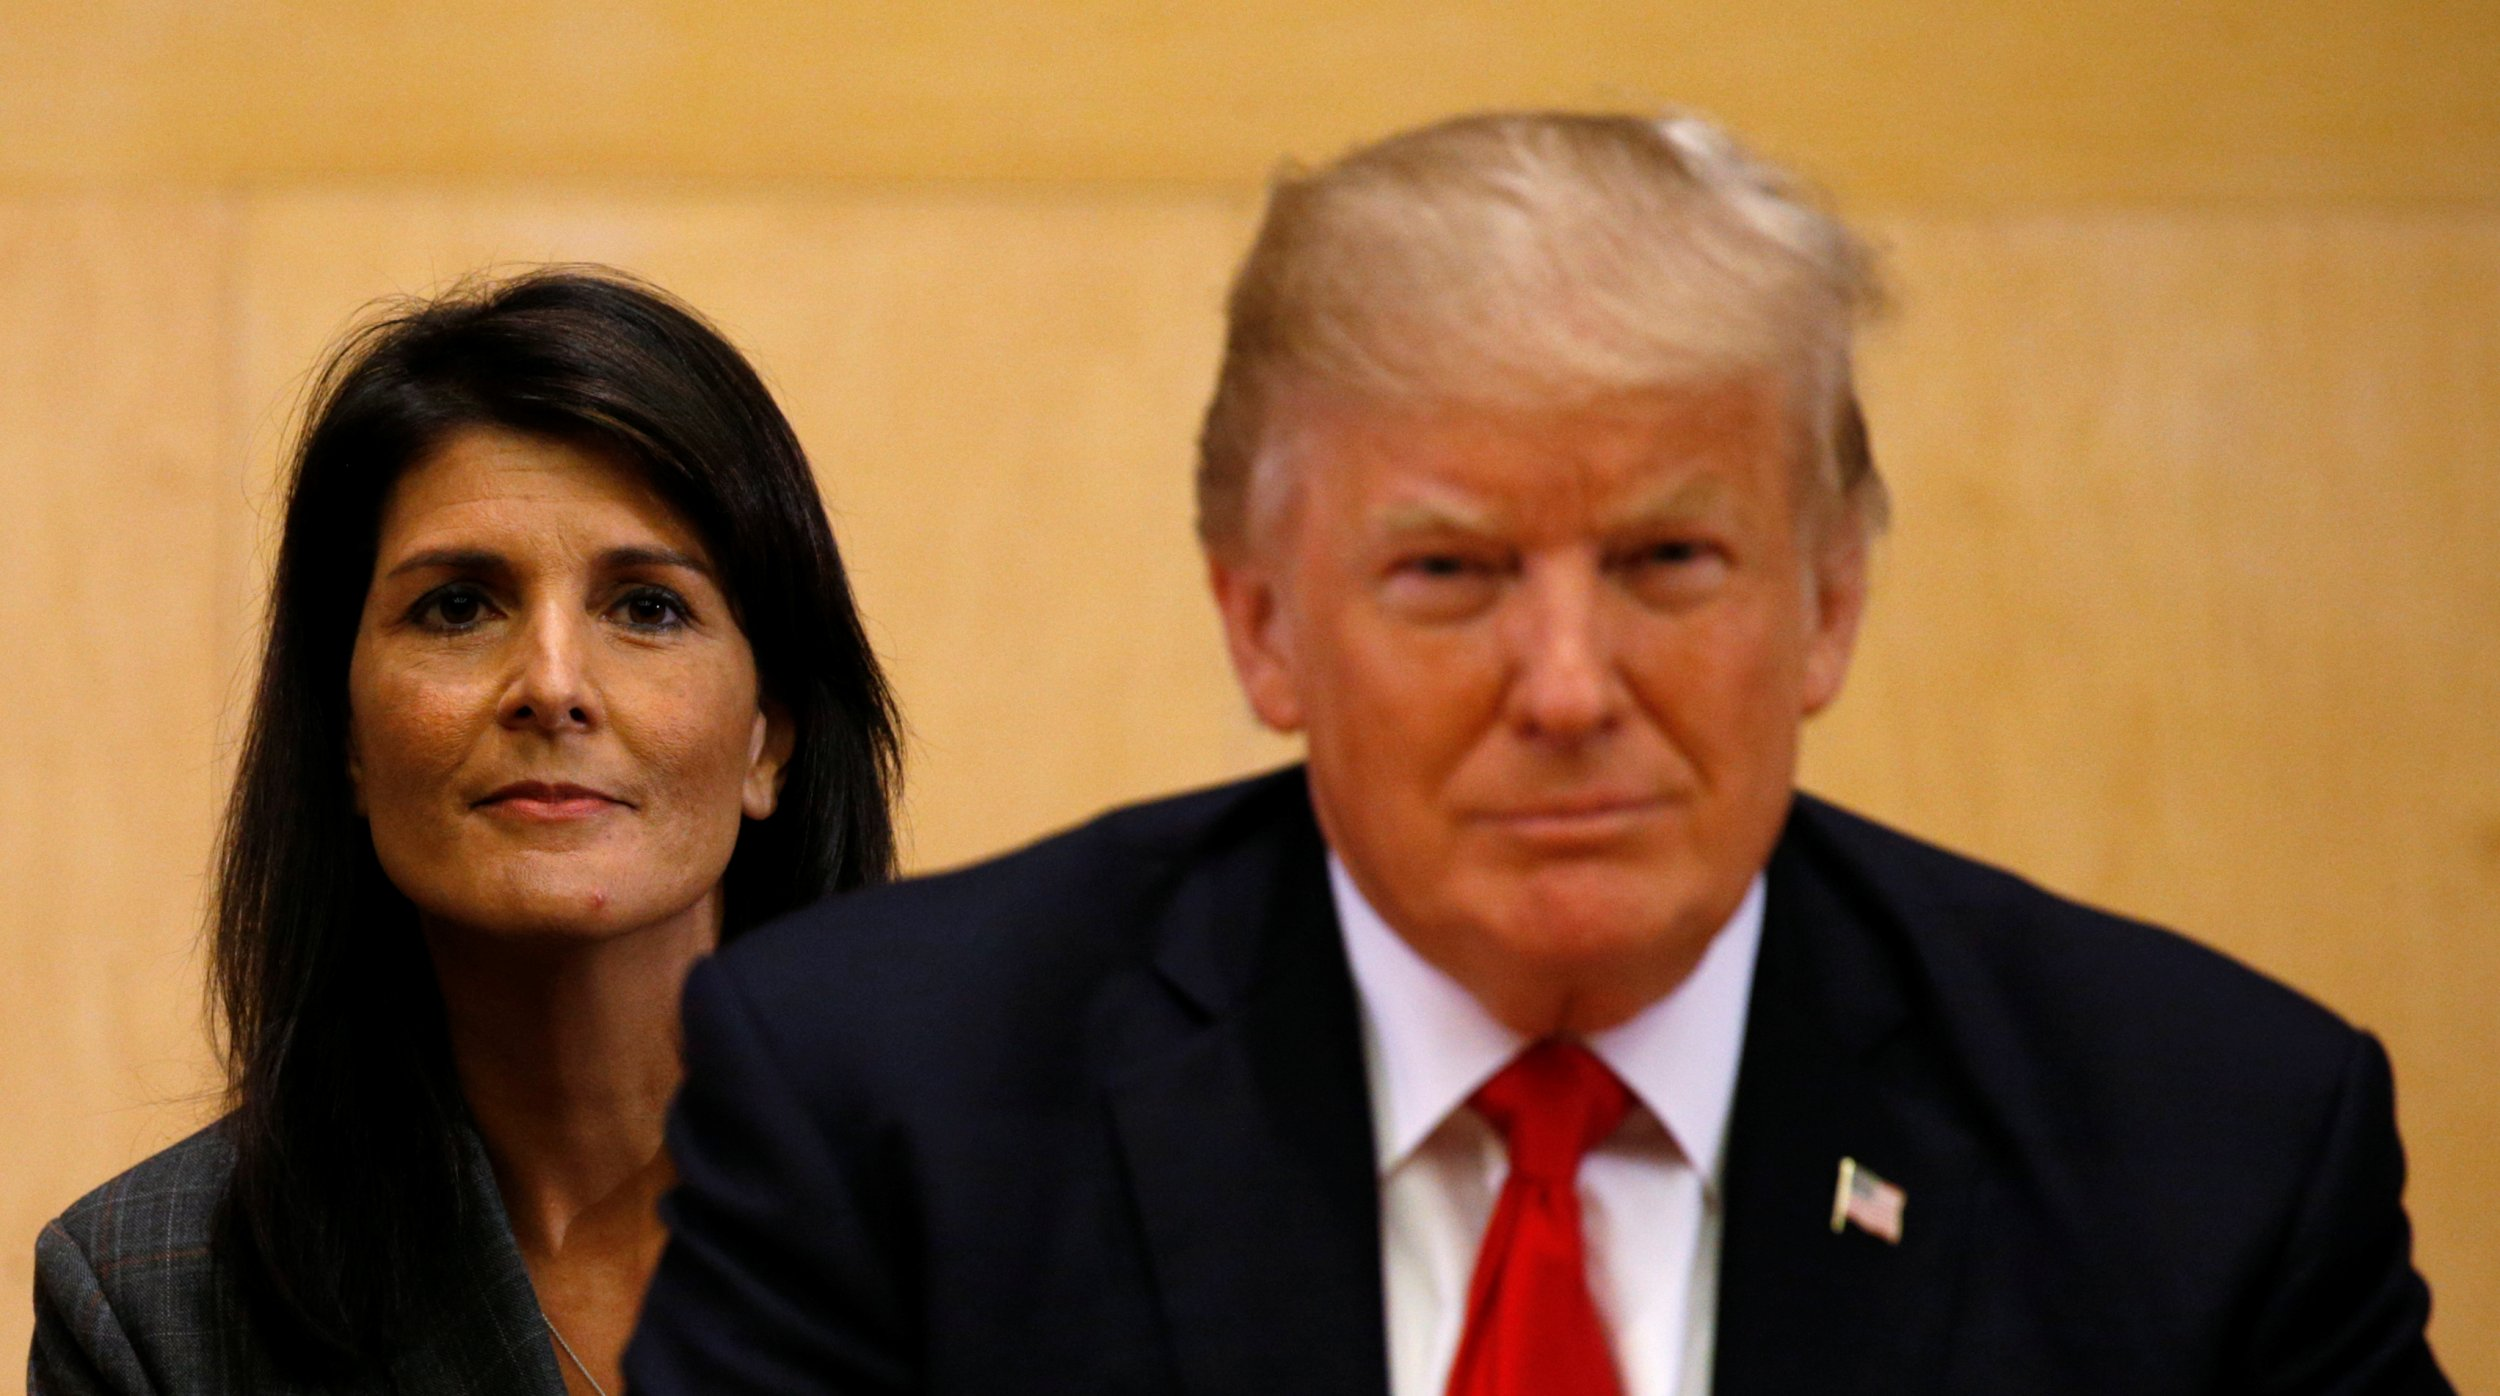 U.S. Ambassador to the U.N. Nikki Haley (L) and U.S. President Donald Trump